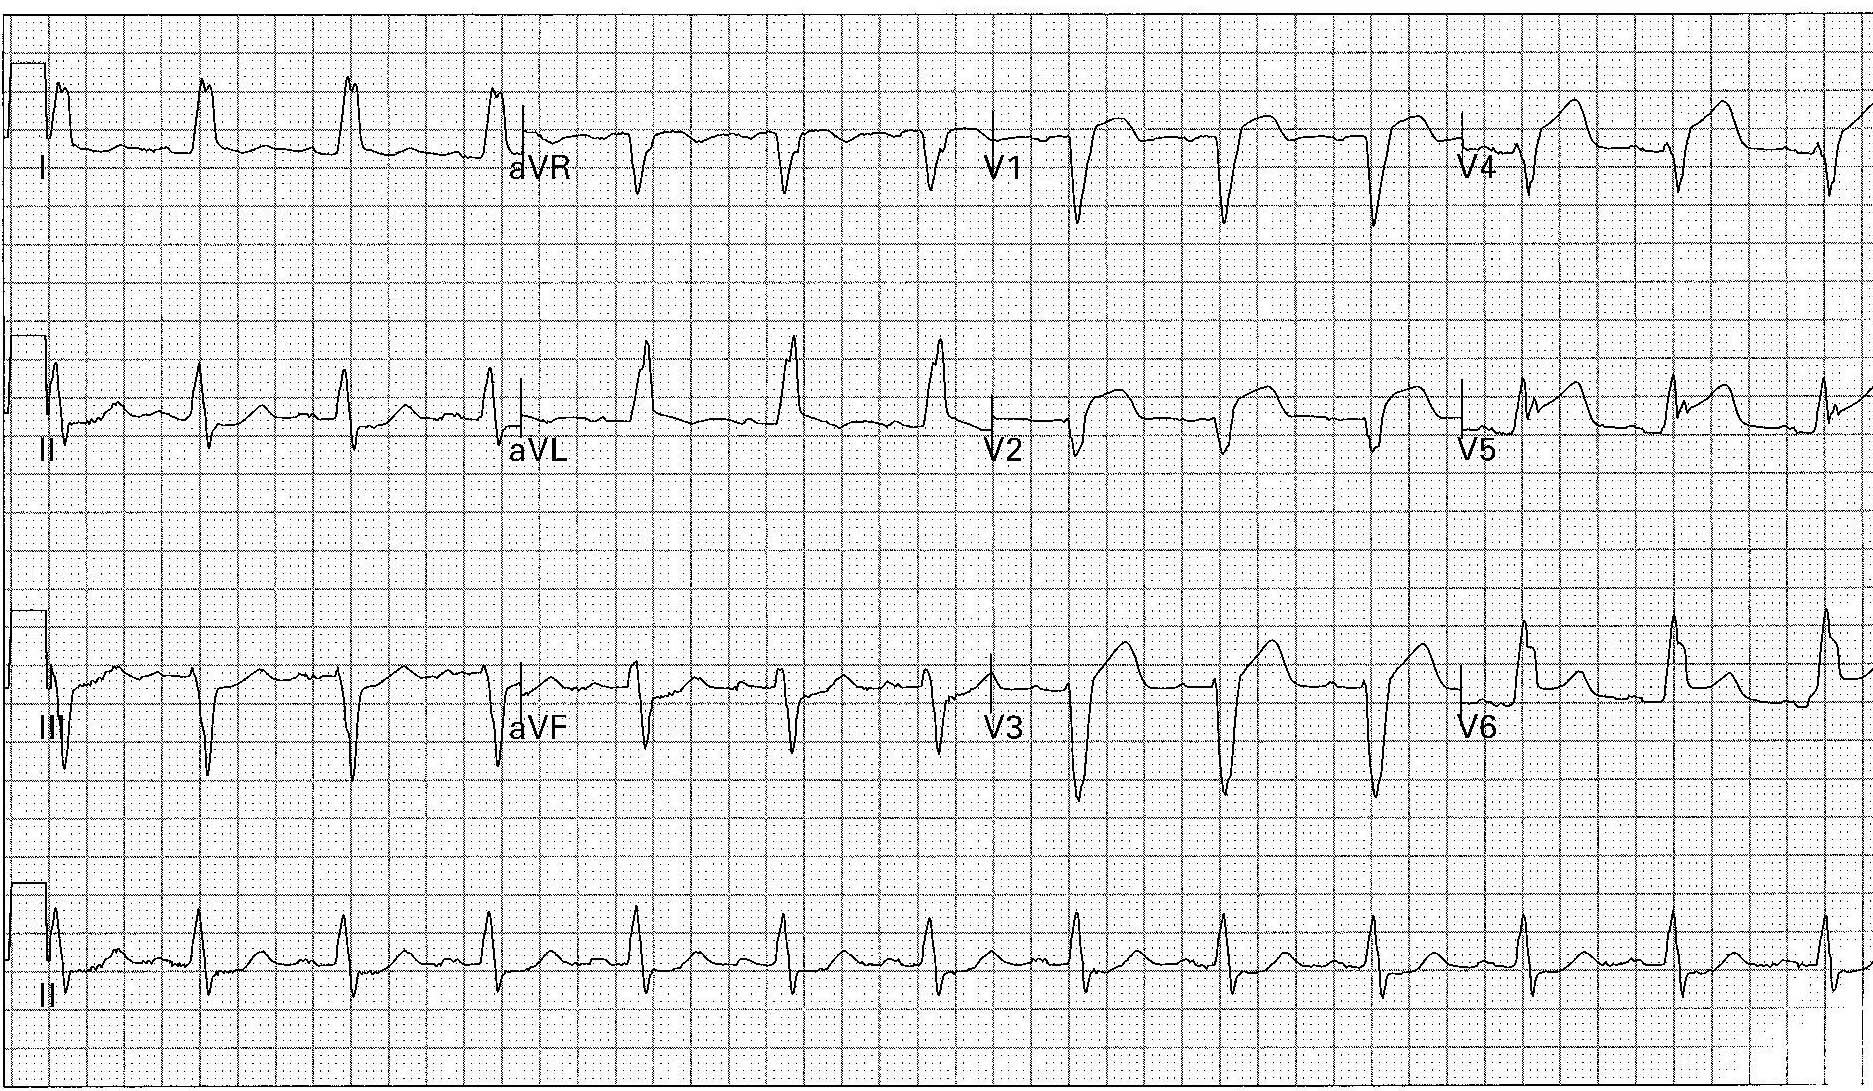 ECG of the week 40